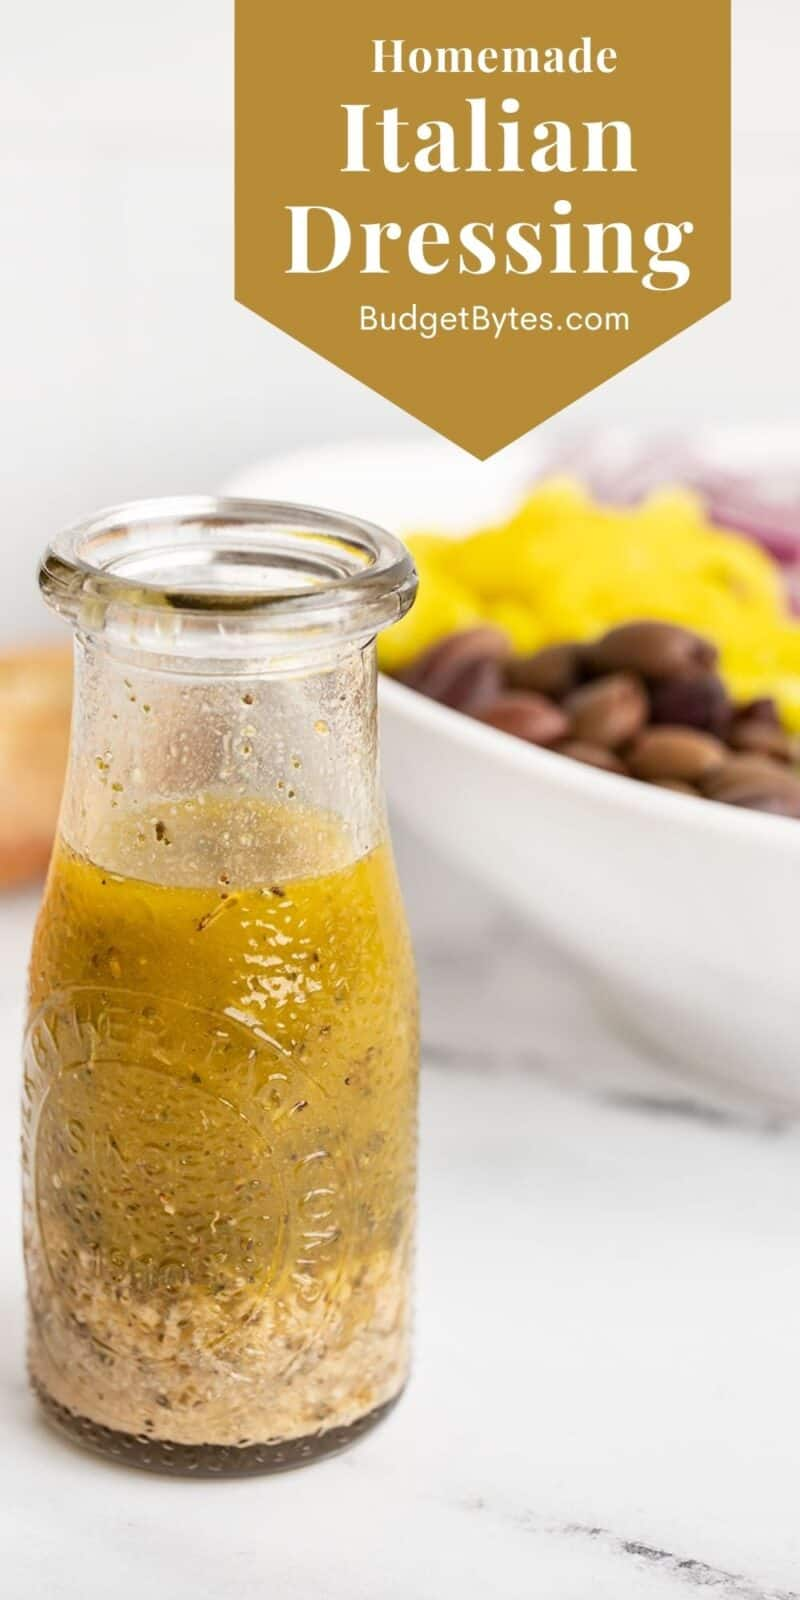 Italian dressing in a glass carafe with title text at the top